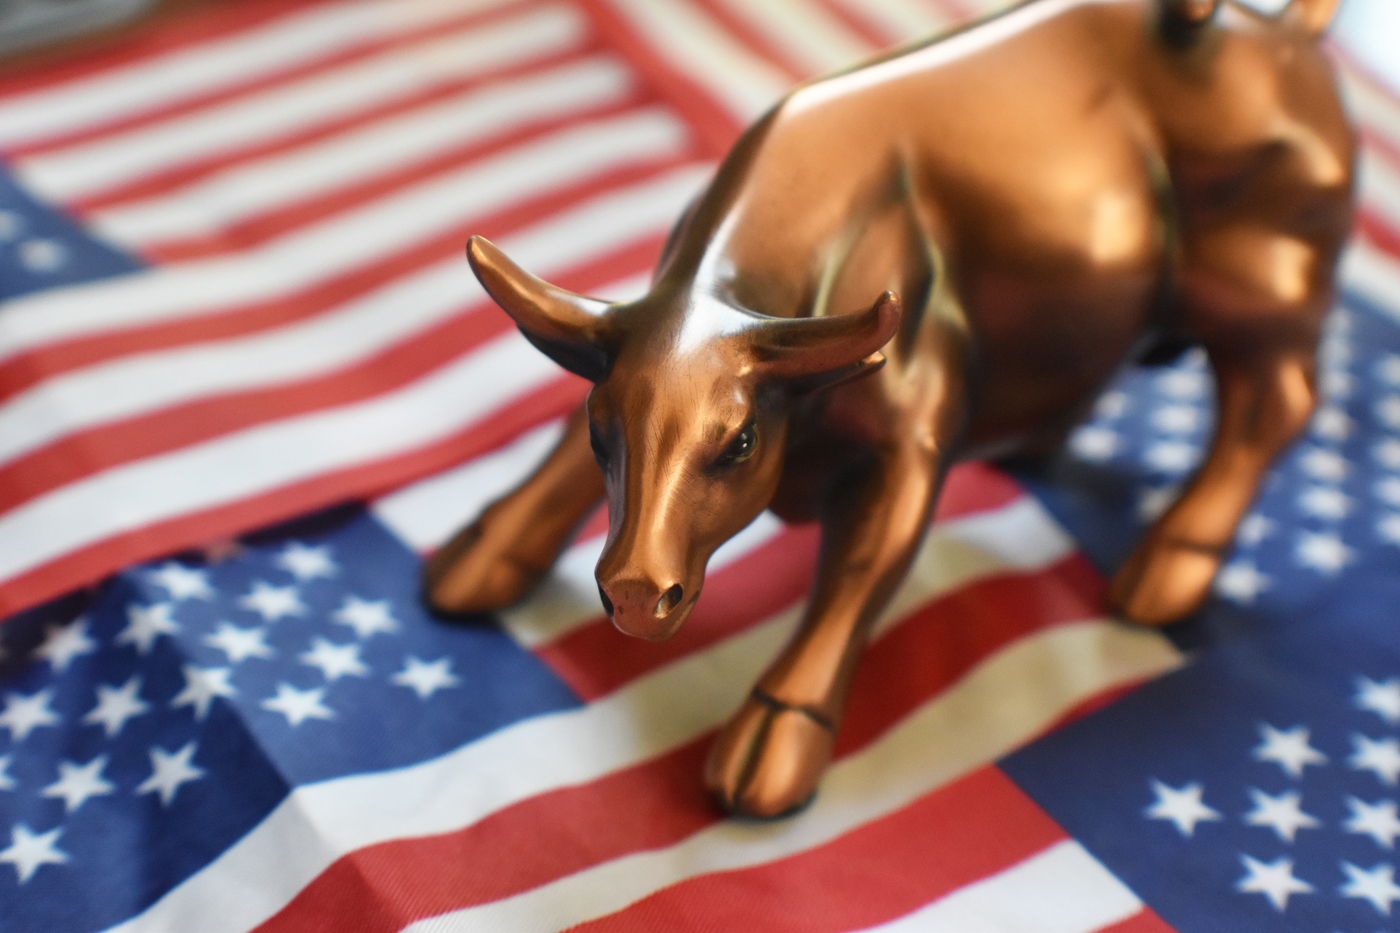 The U.S. stock market is CLOSED on Independence Day